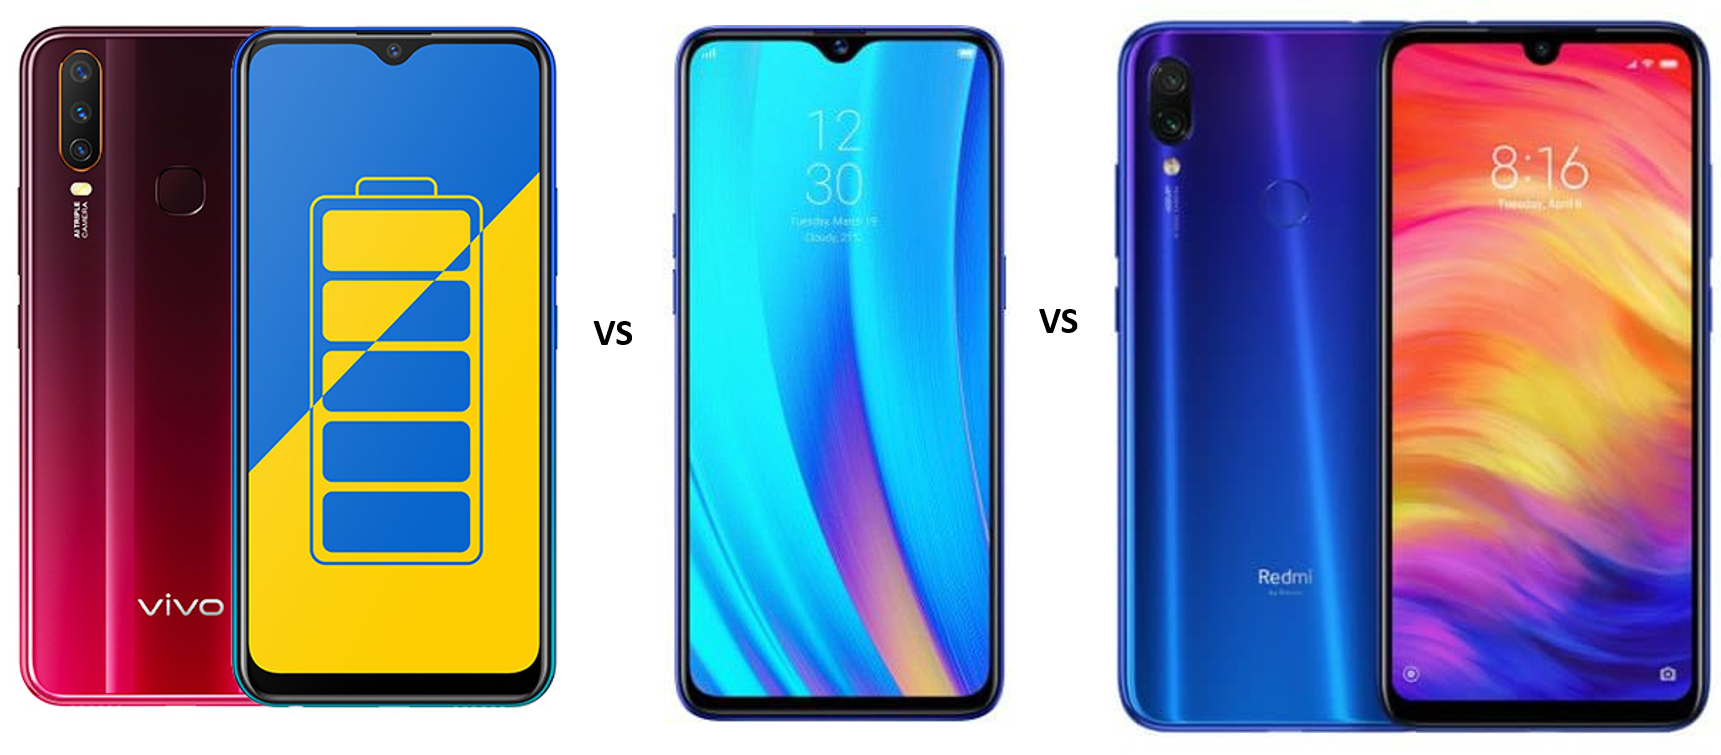 Vivo Y15 vs Realme 3 Pro vs Redmi Note 7 Pro: Which one should you buy?